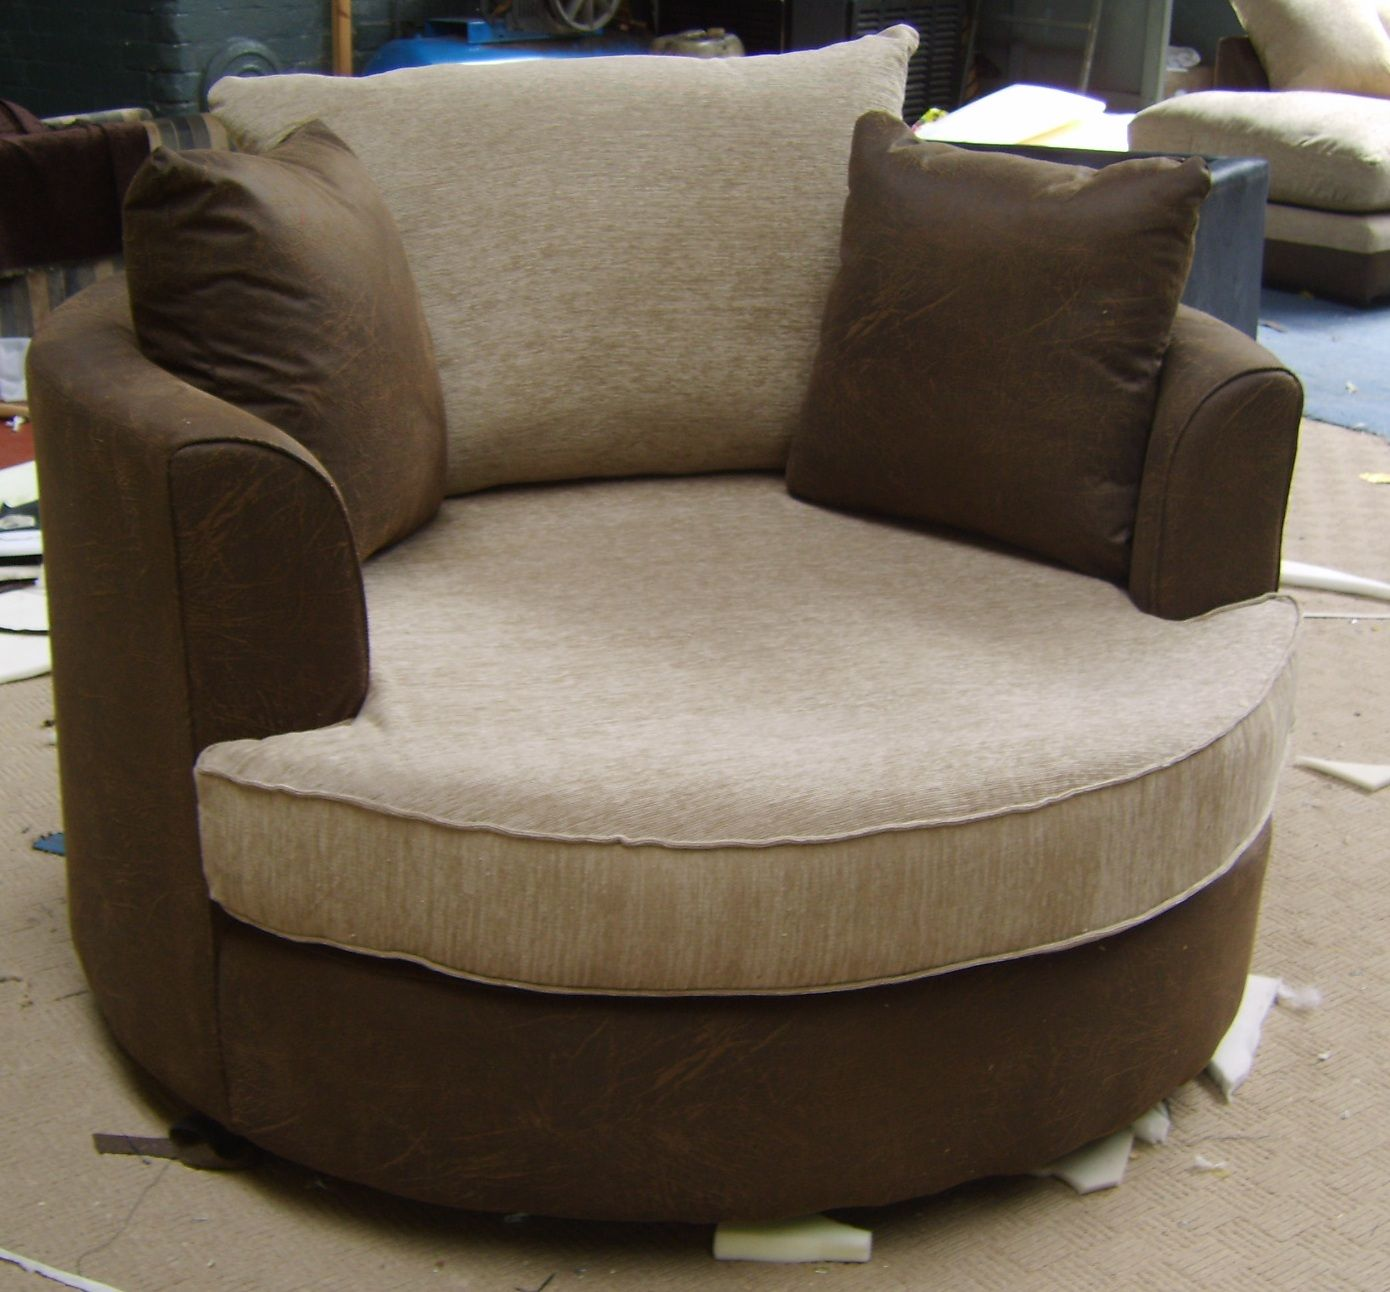 Best Funky Reading Time Big Comfy Chair Comfy Bedroom Chair 400 x 300